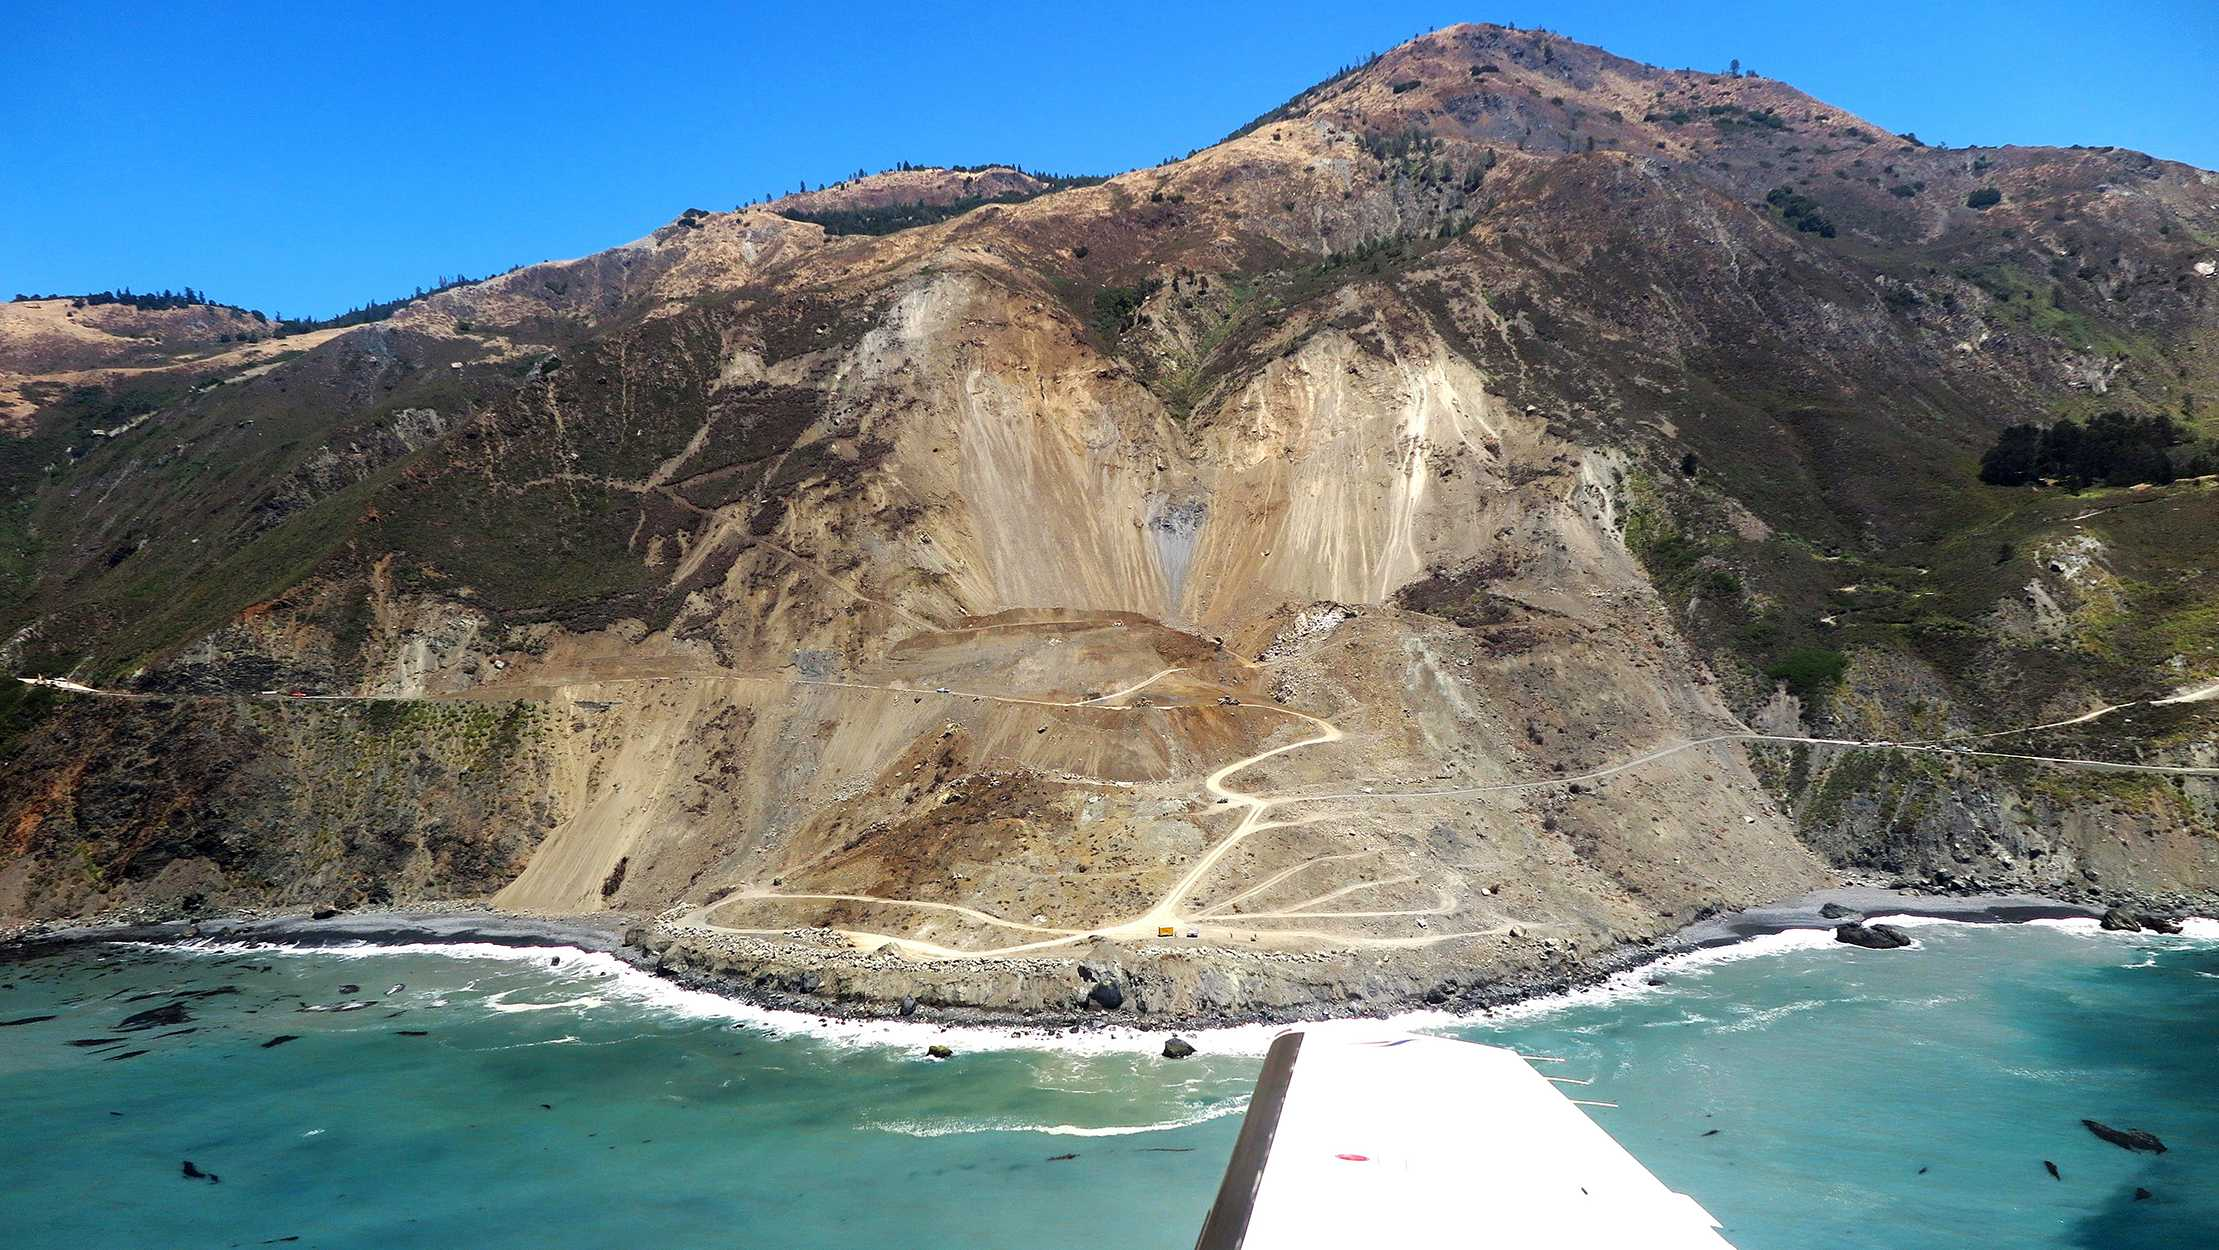 Mud Creek landslide